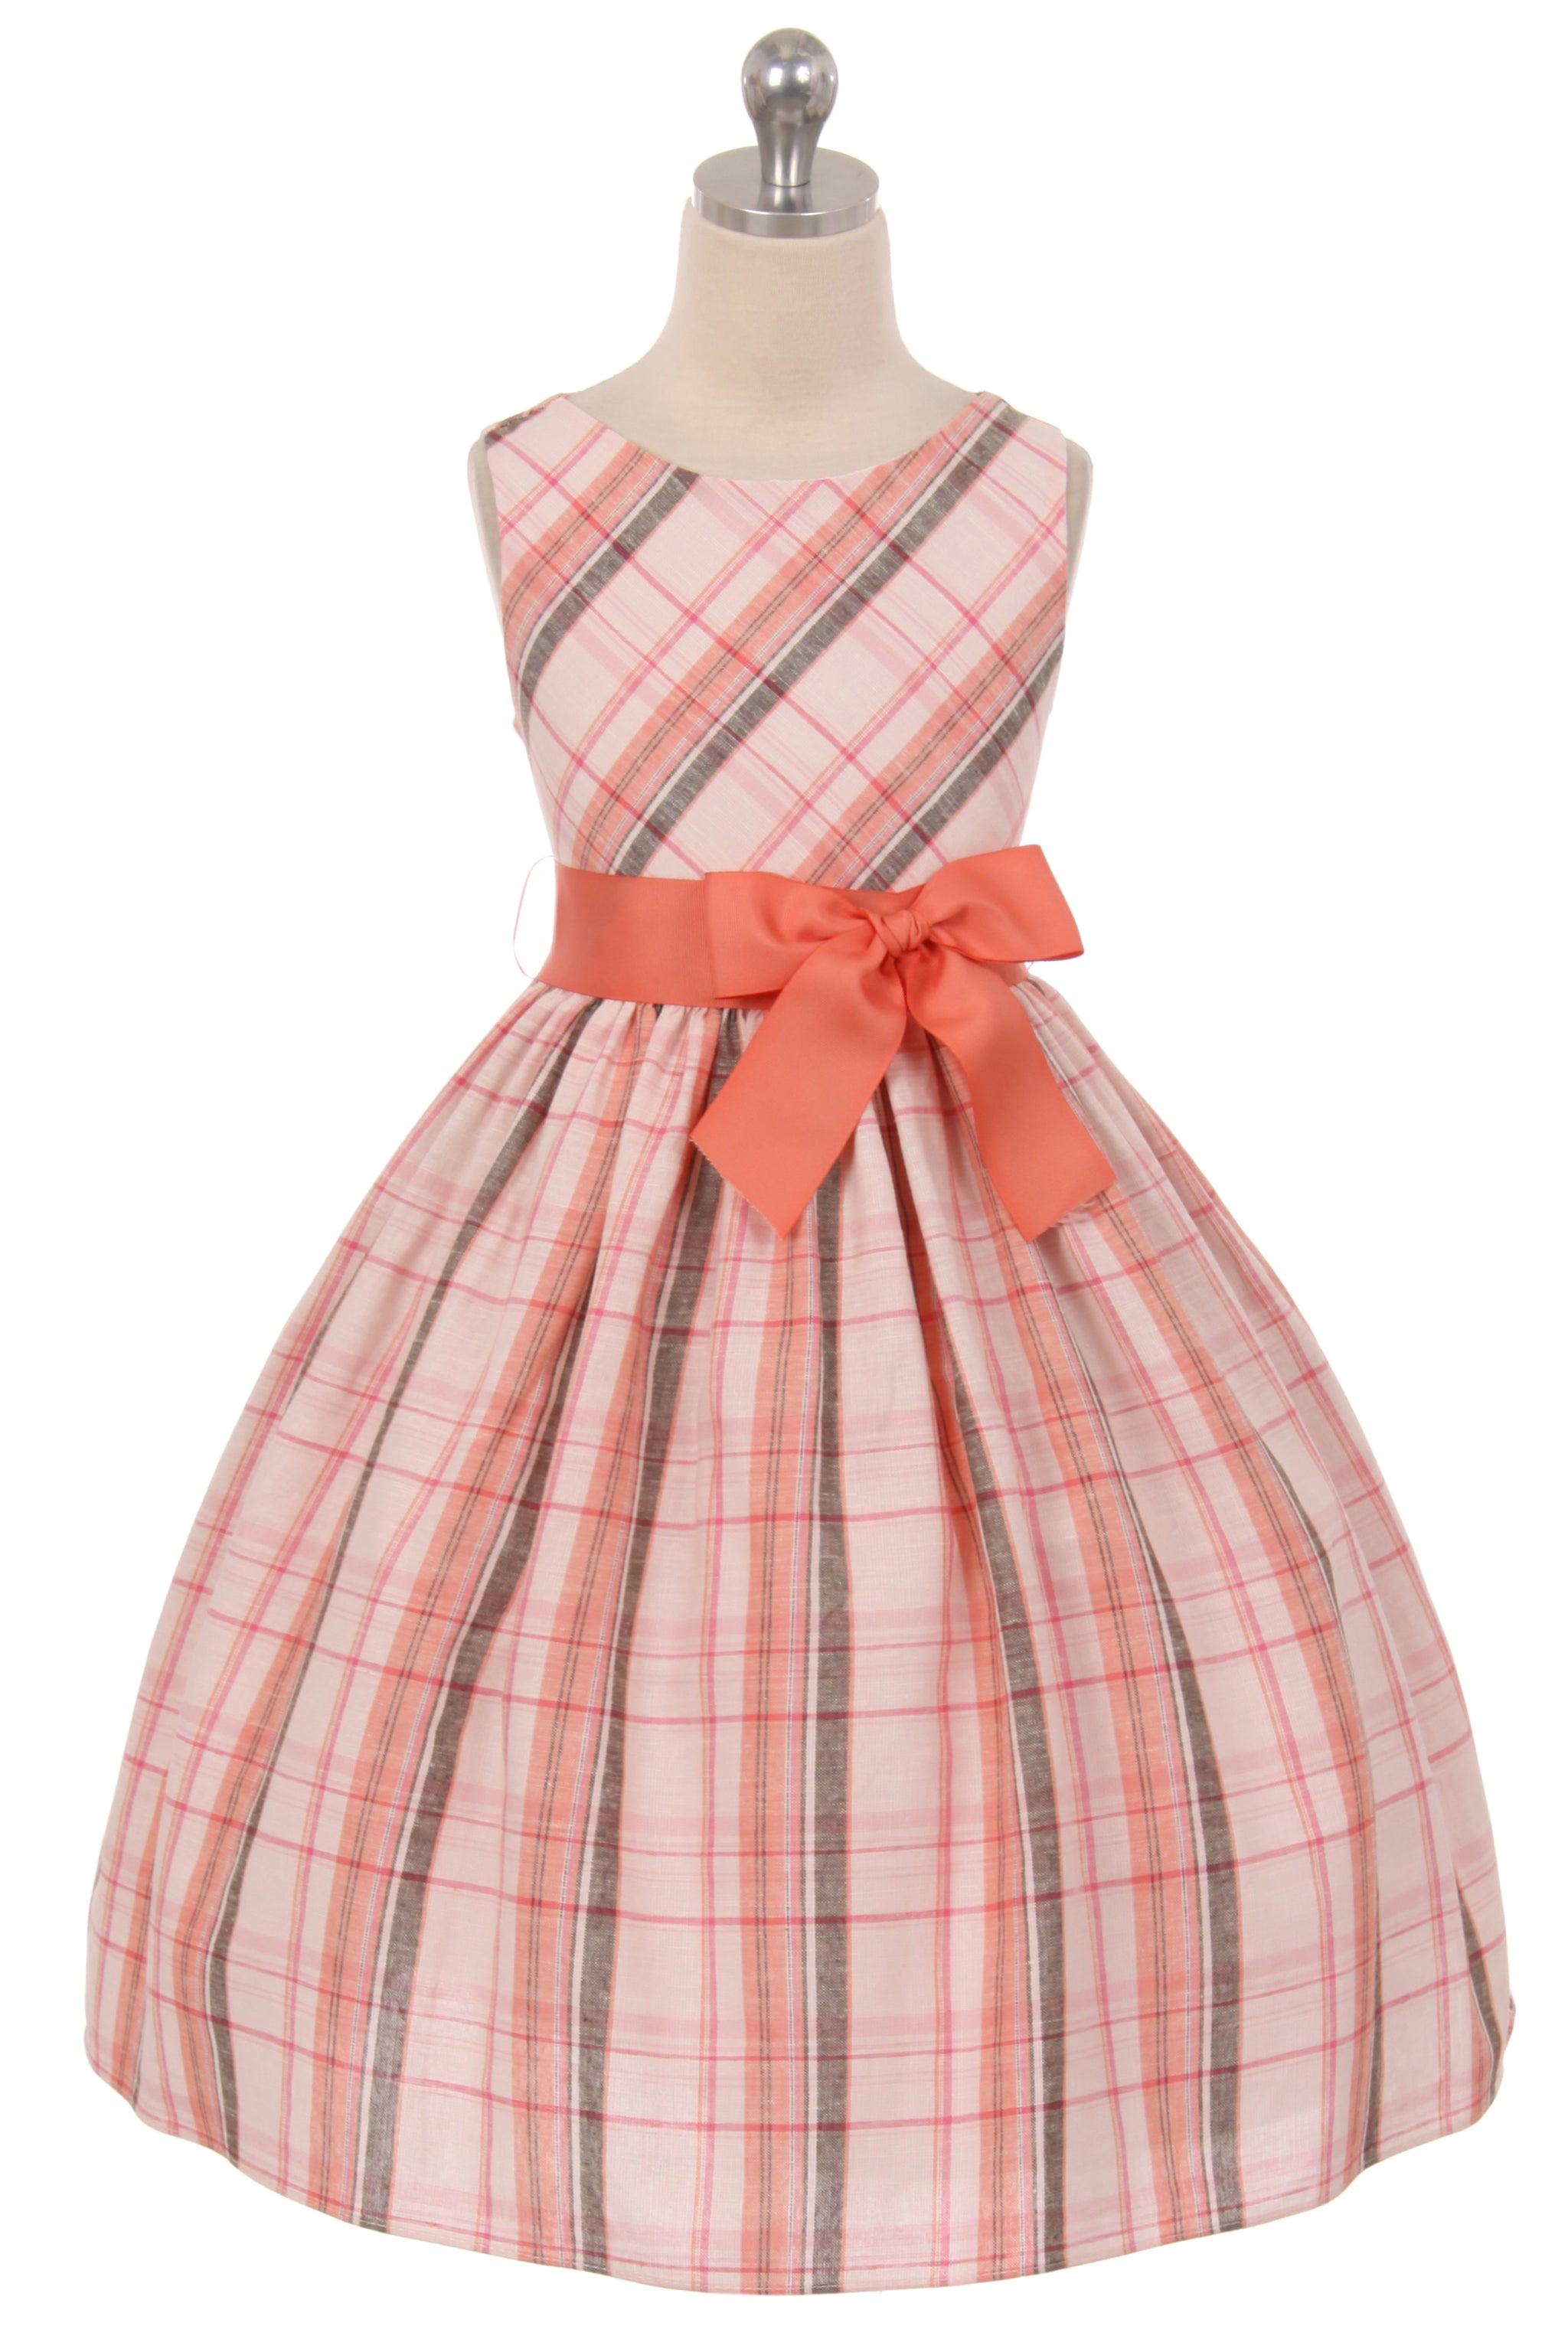 Tartan Plaid Cotton Girl Dress